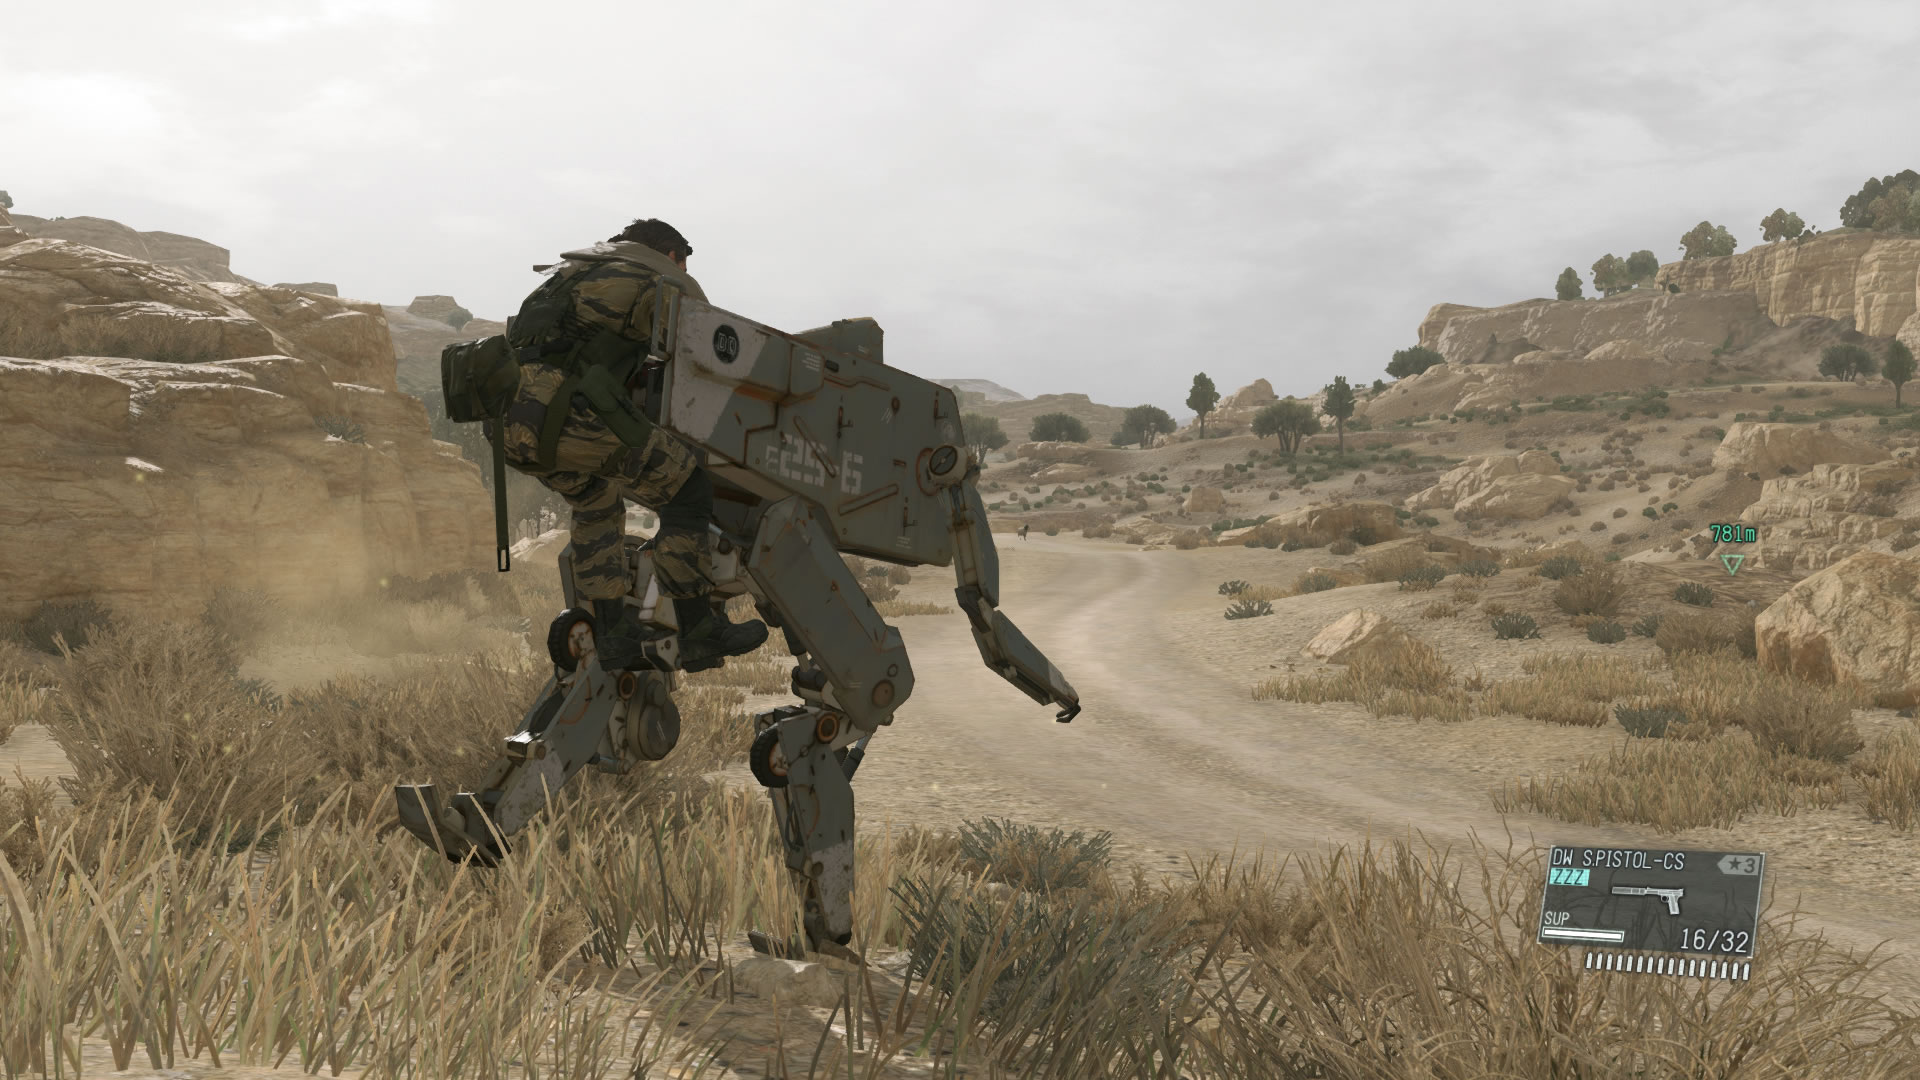 Metal-Gear-Solid-V-The-Phantom-Pain-Screenshot-4